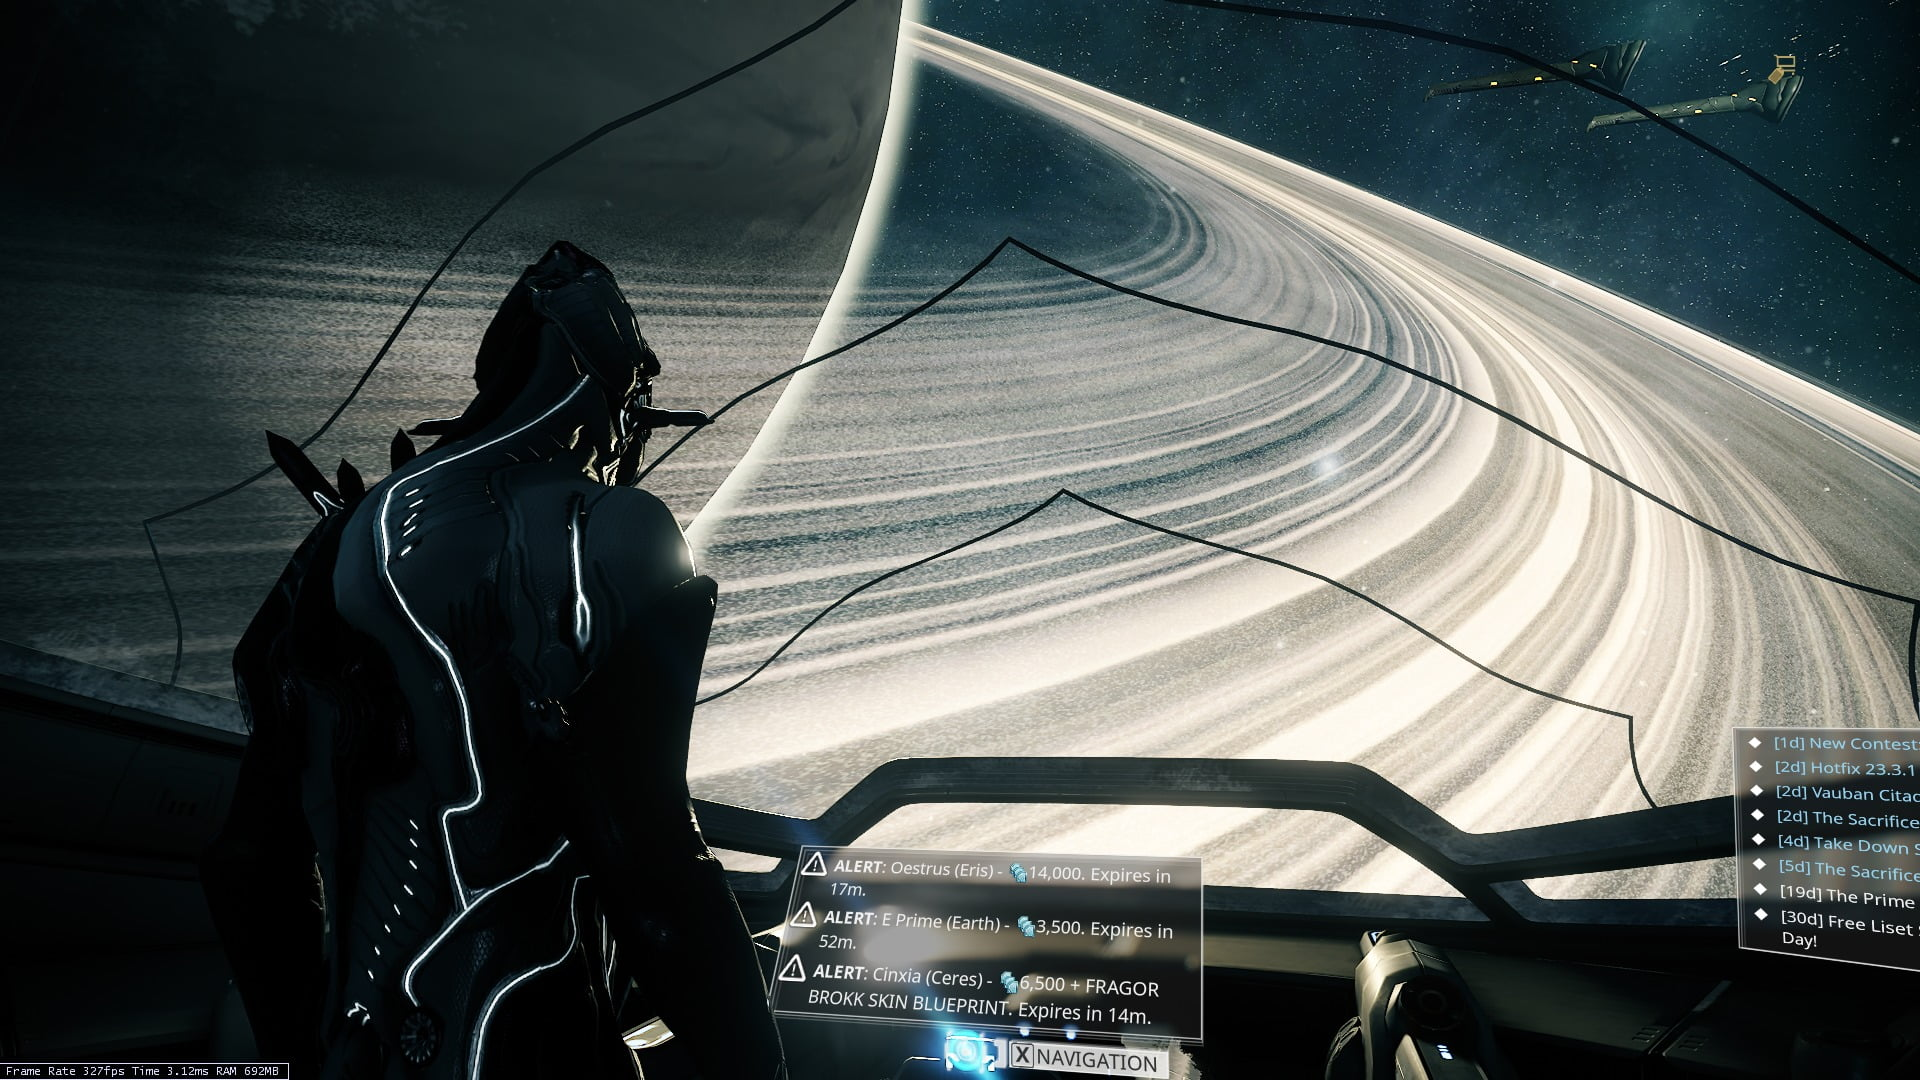 Warframe Review - Saturn as seen from the Orbiter